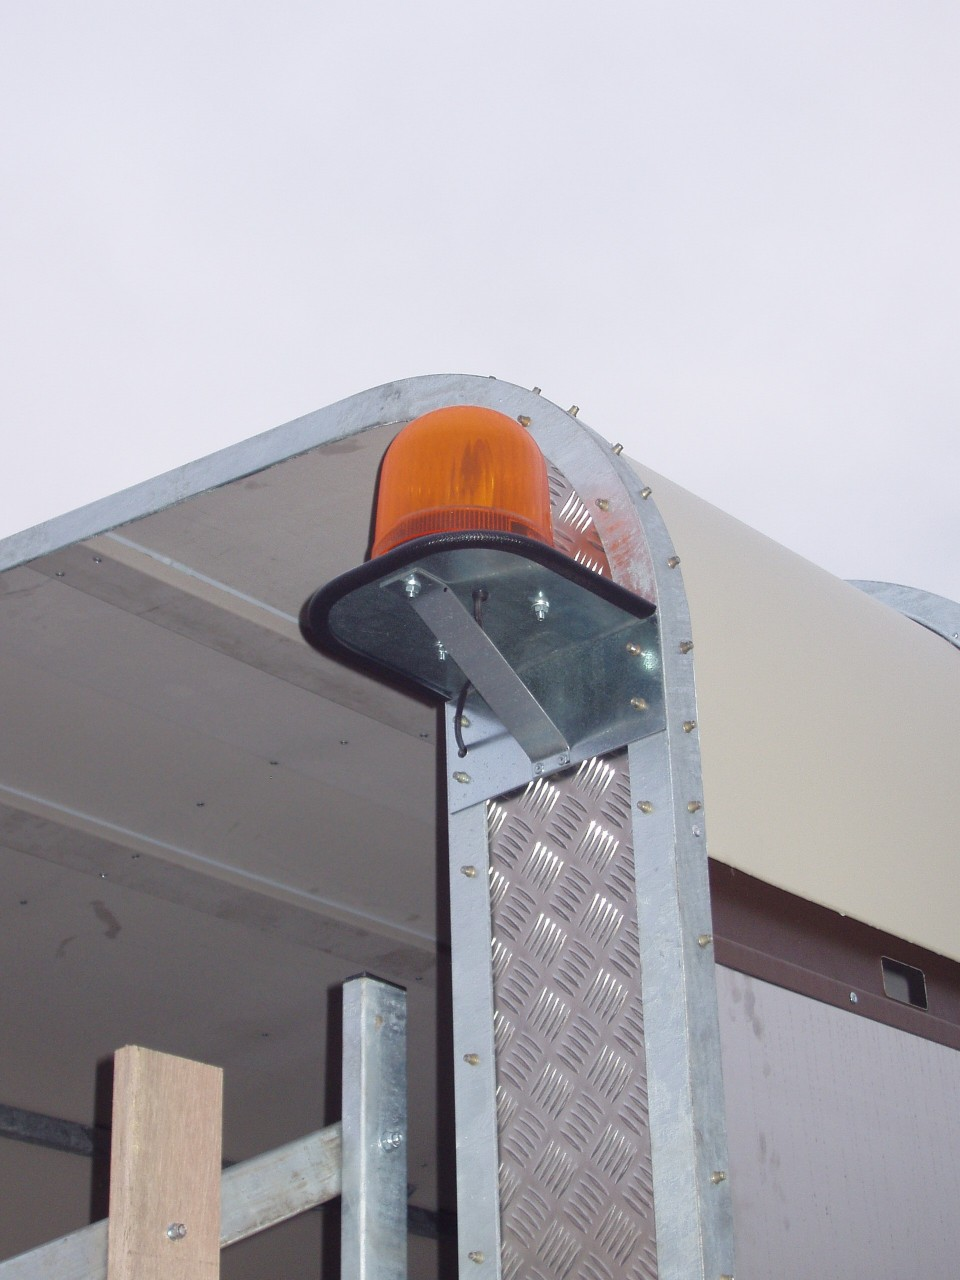 Optional Amber Beacon on Rear Corner